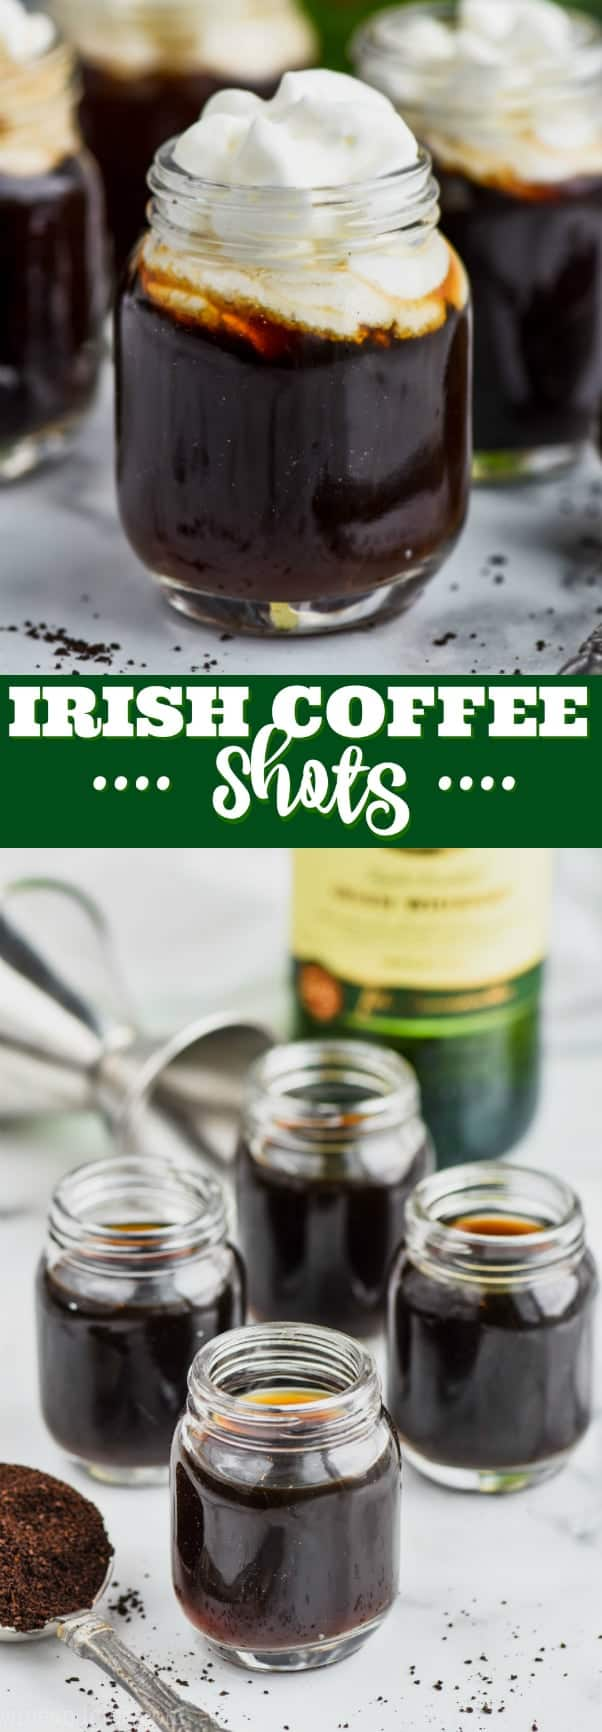 collage of shots of coffee